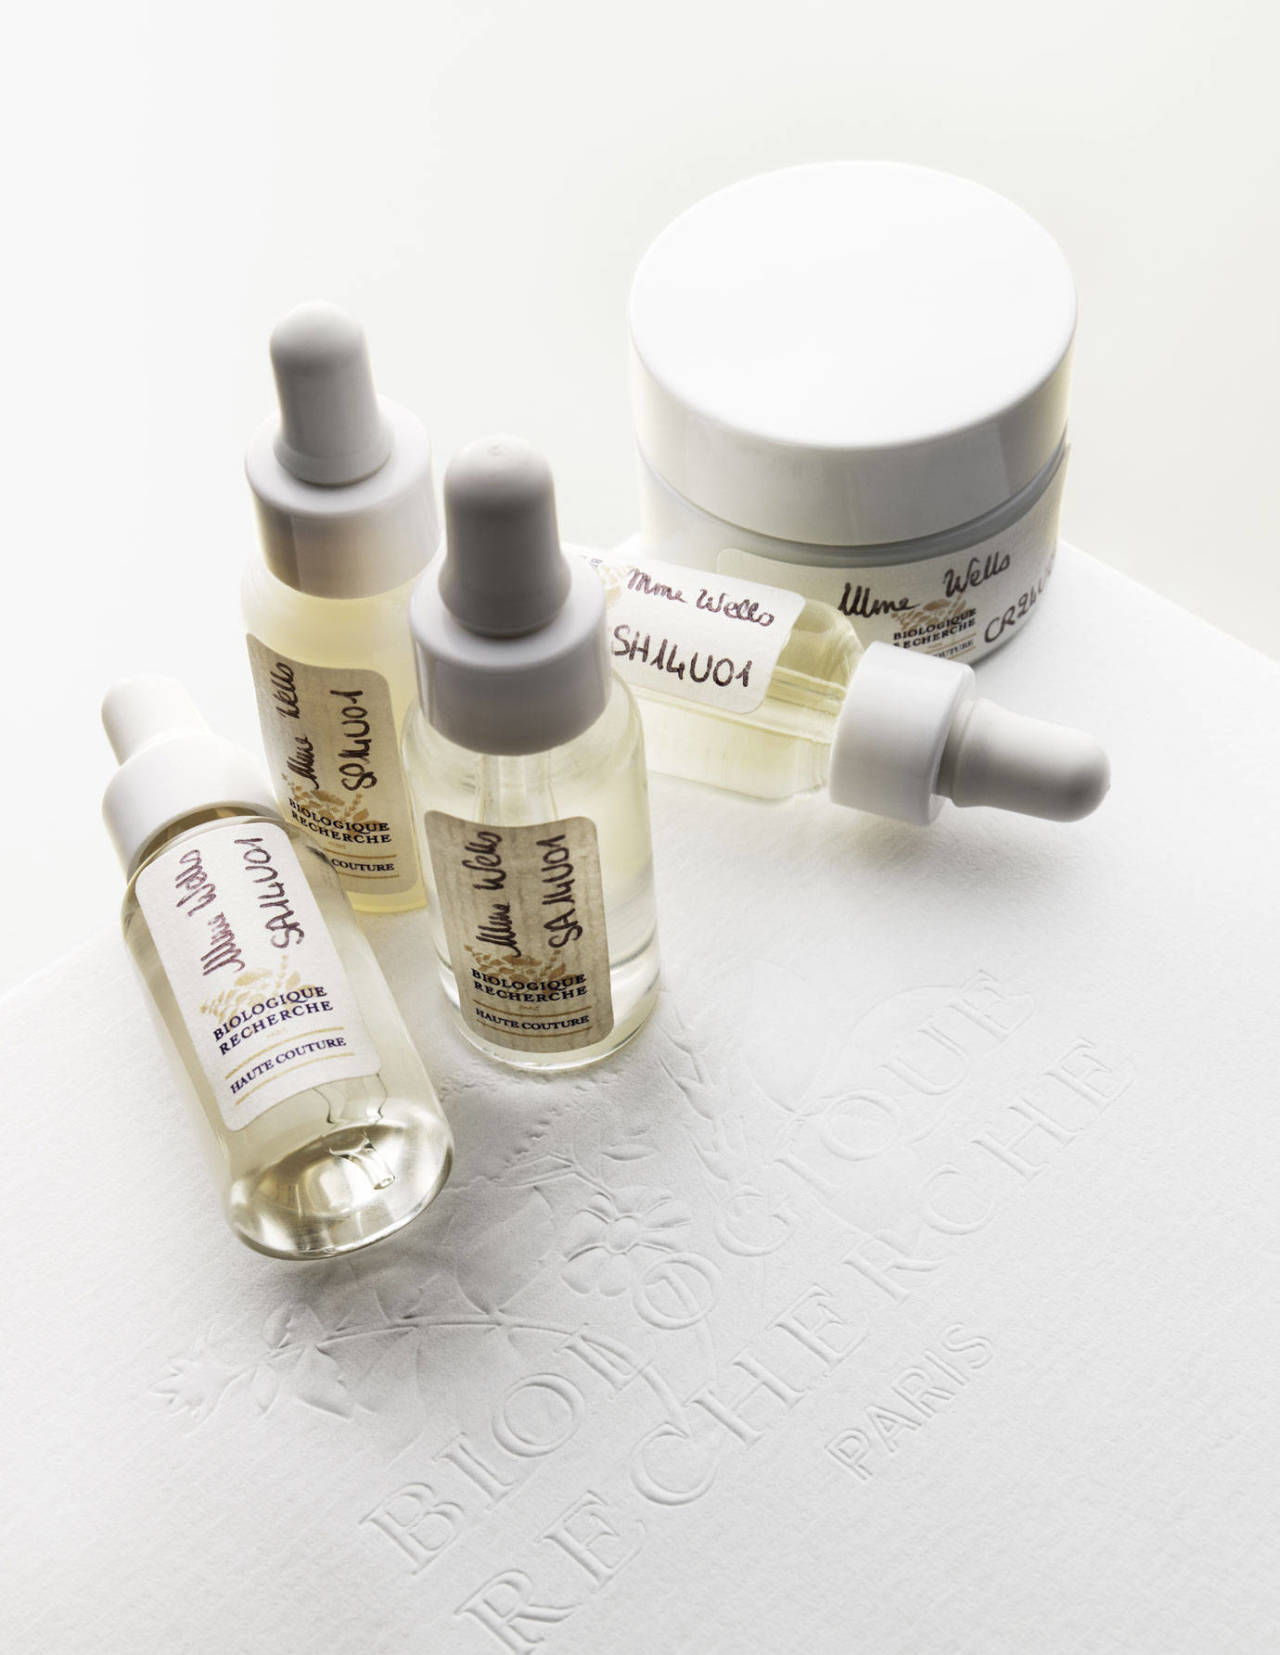 French Skin Care Products